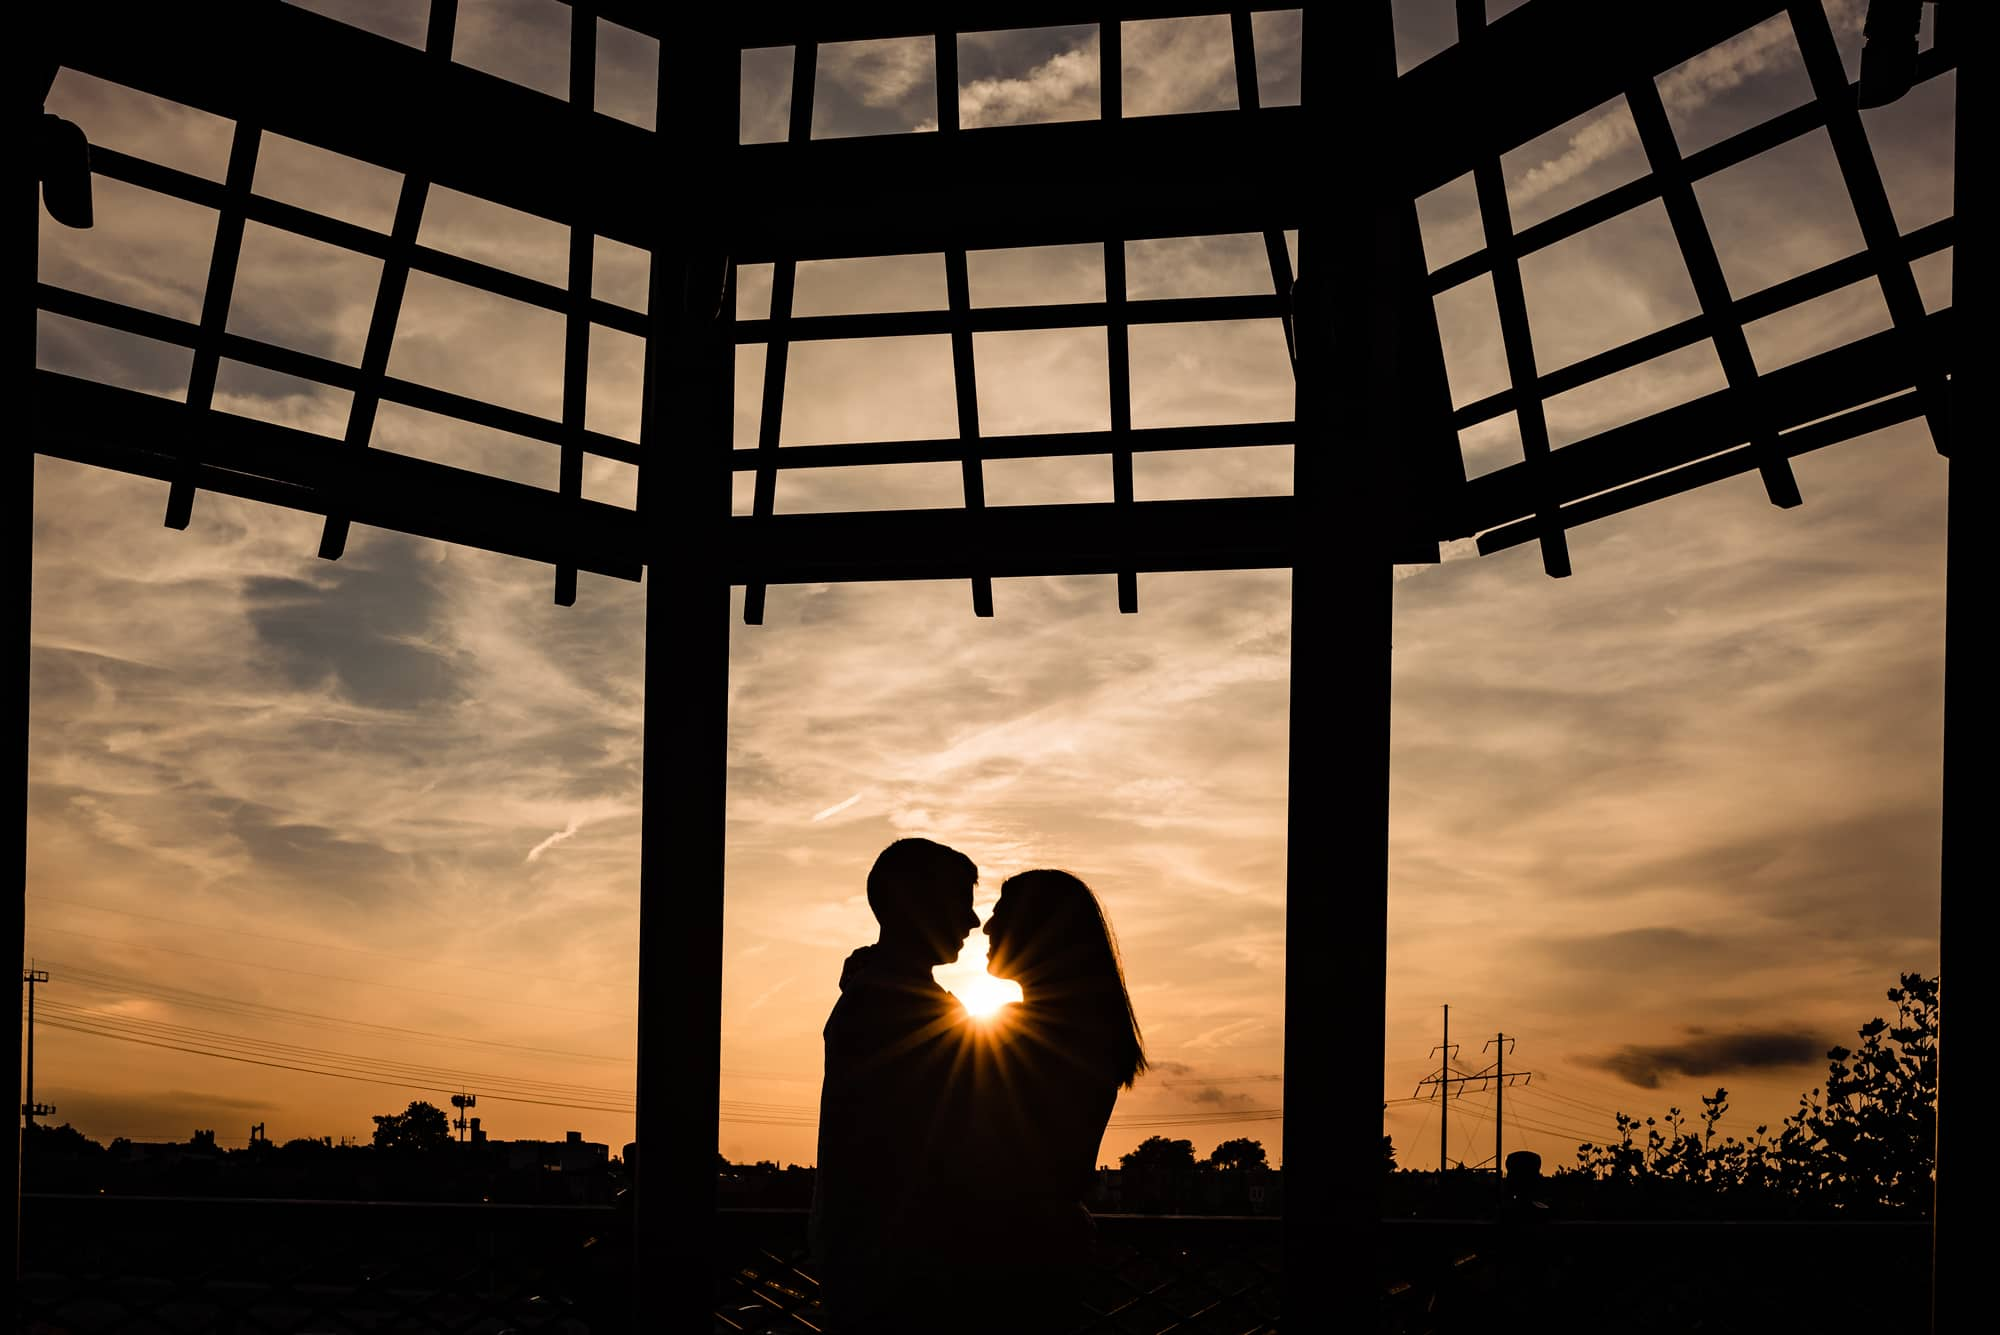 Silhouette of a couple at sunset at the Philadelphia Museum of Art